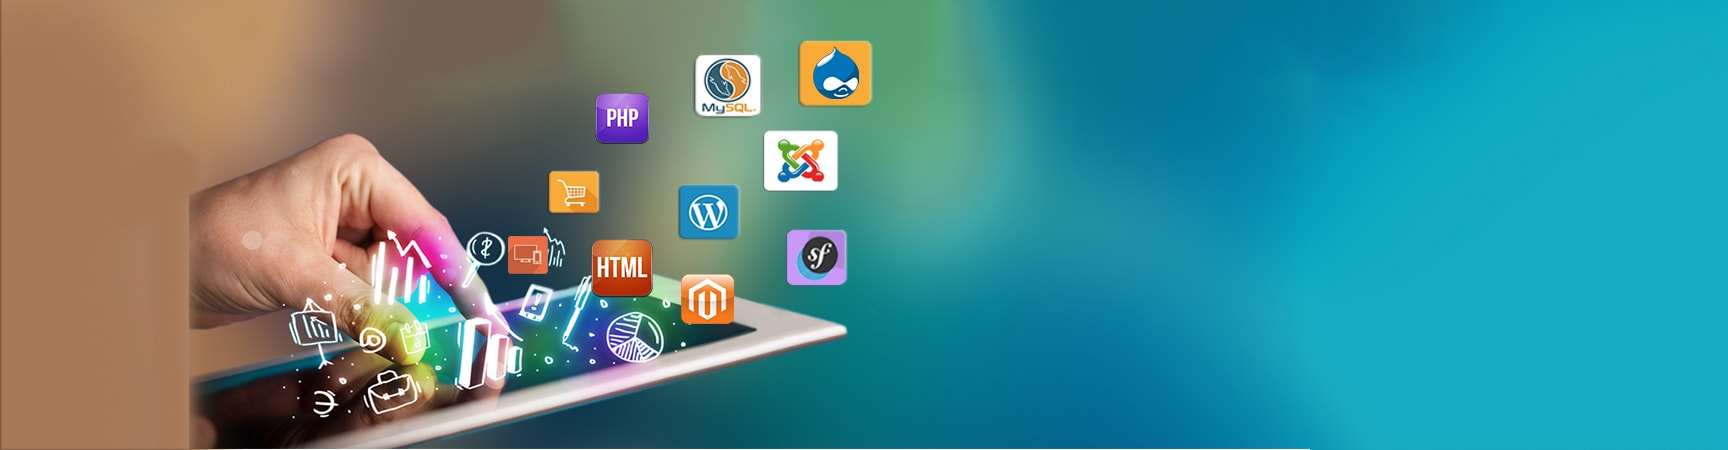 web development company in chennai